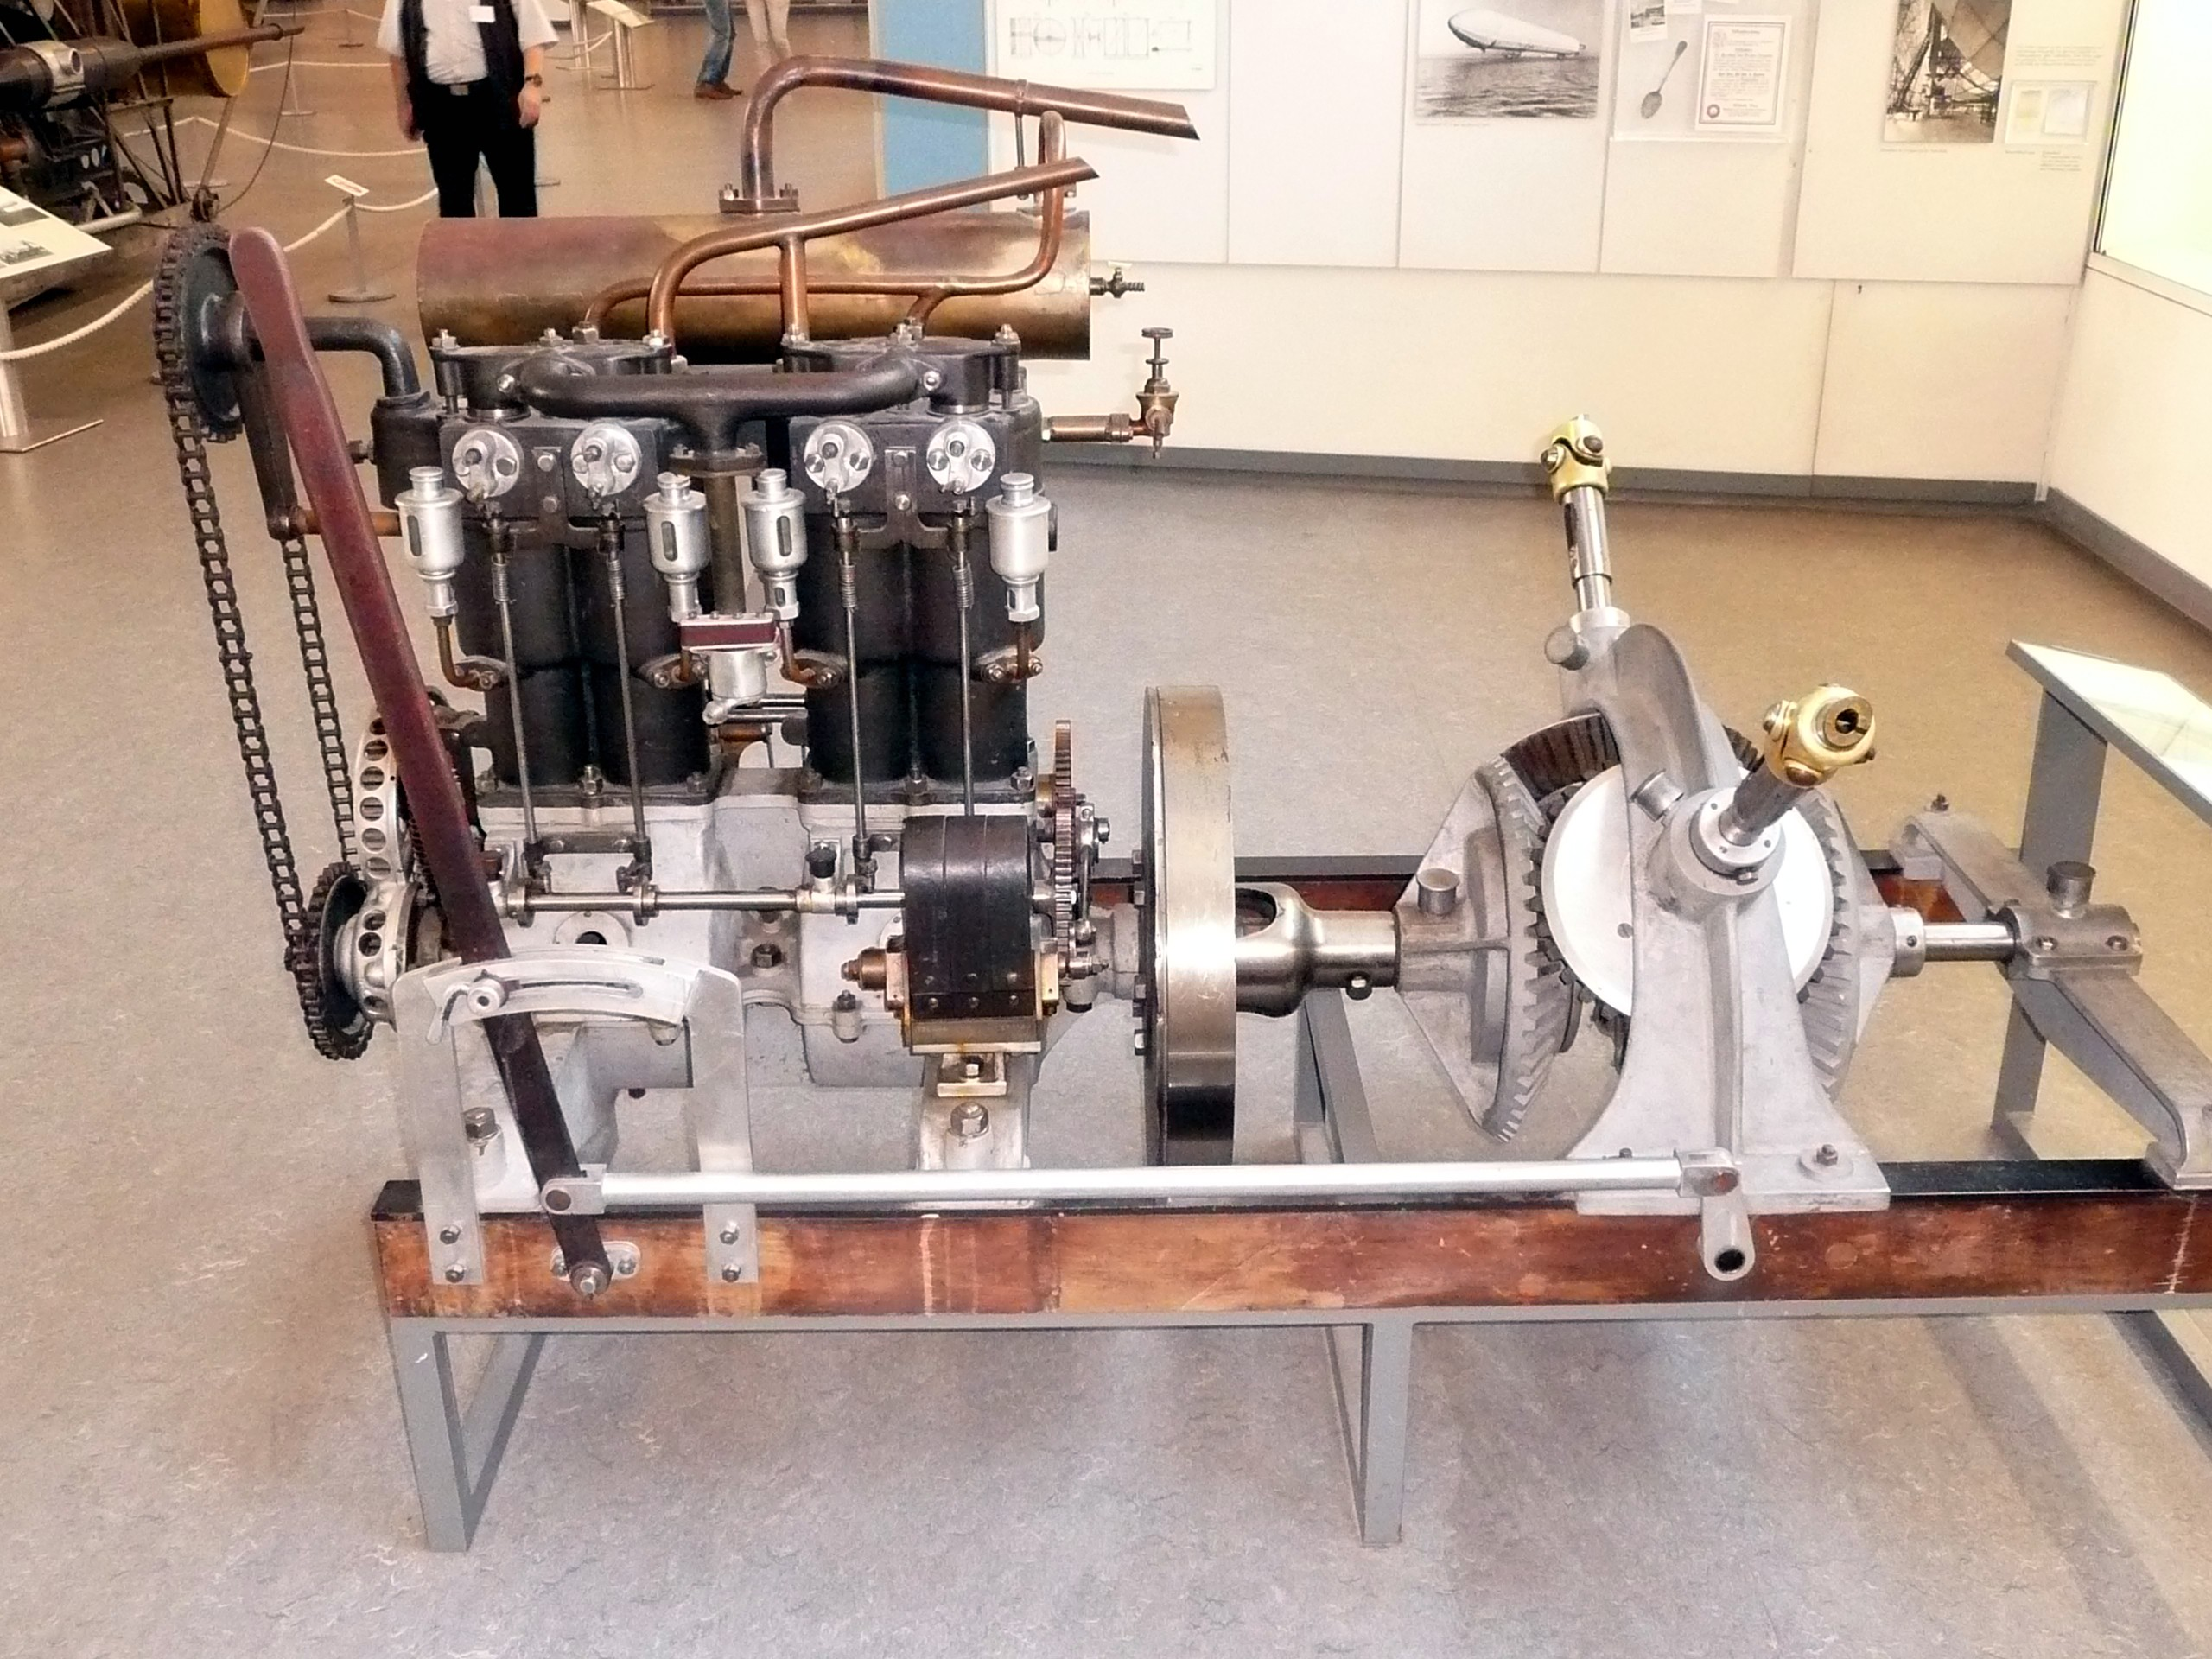 One of LZ 1's Daimler NL-1 engines, preserved in the Deutsches Museum, Munich